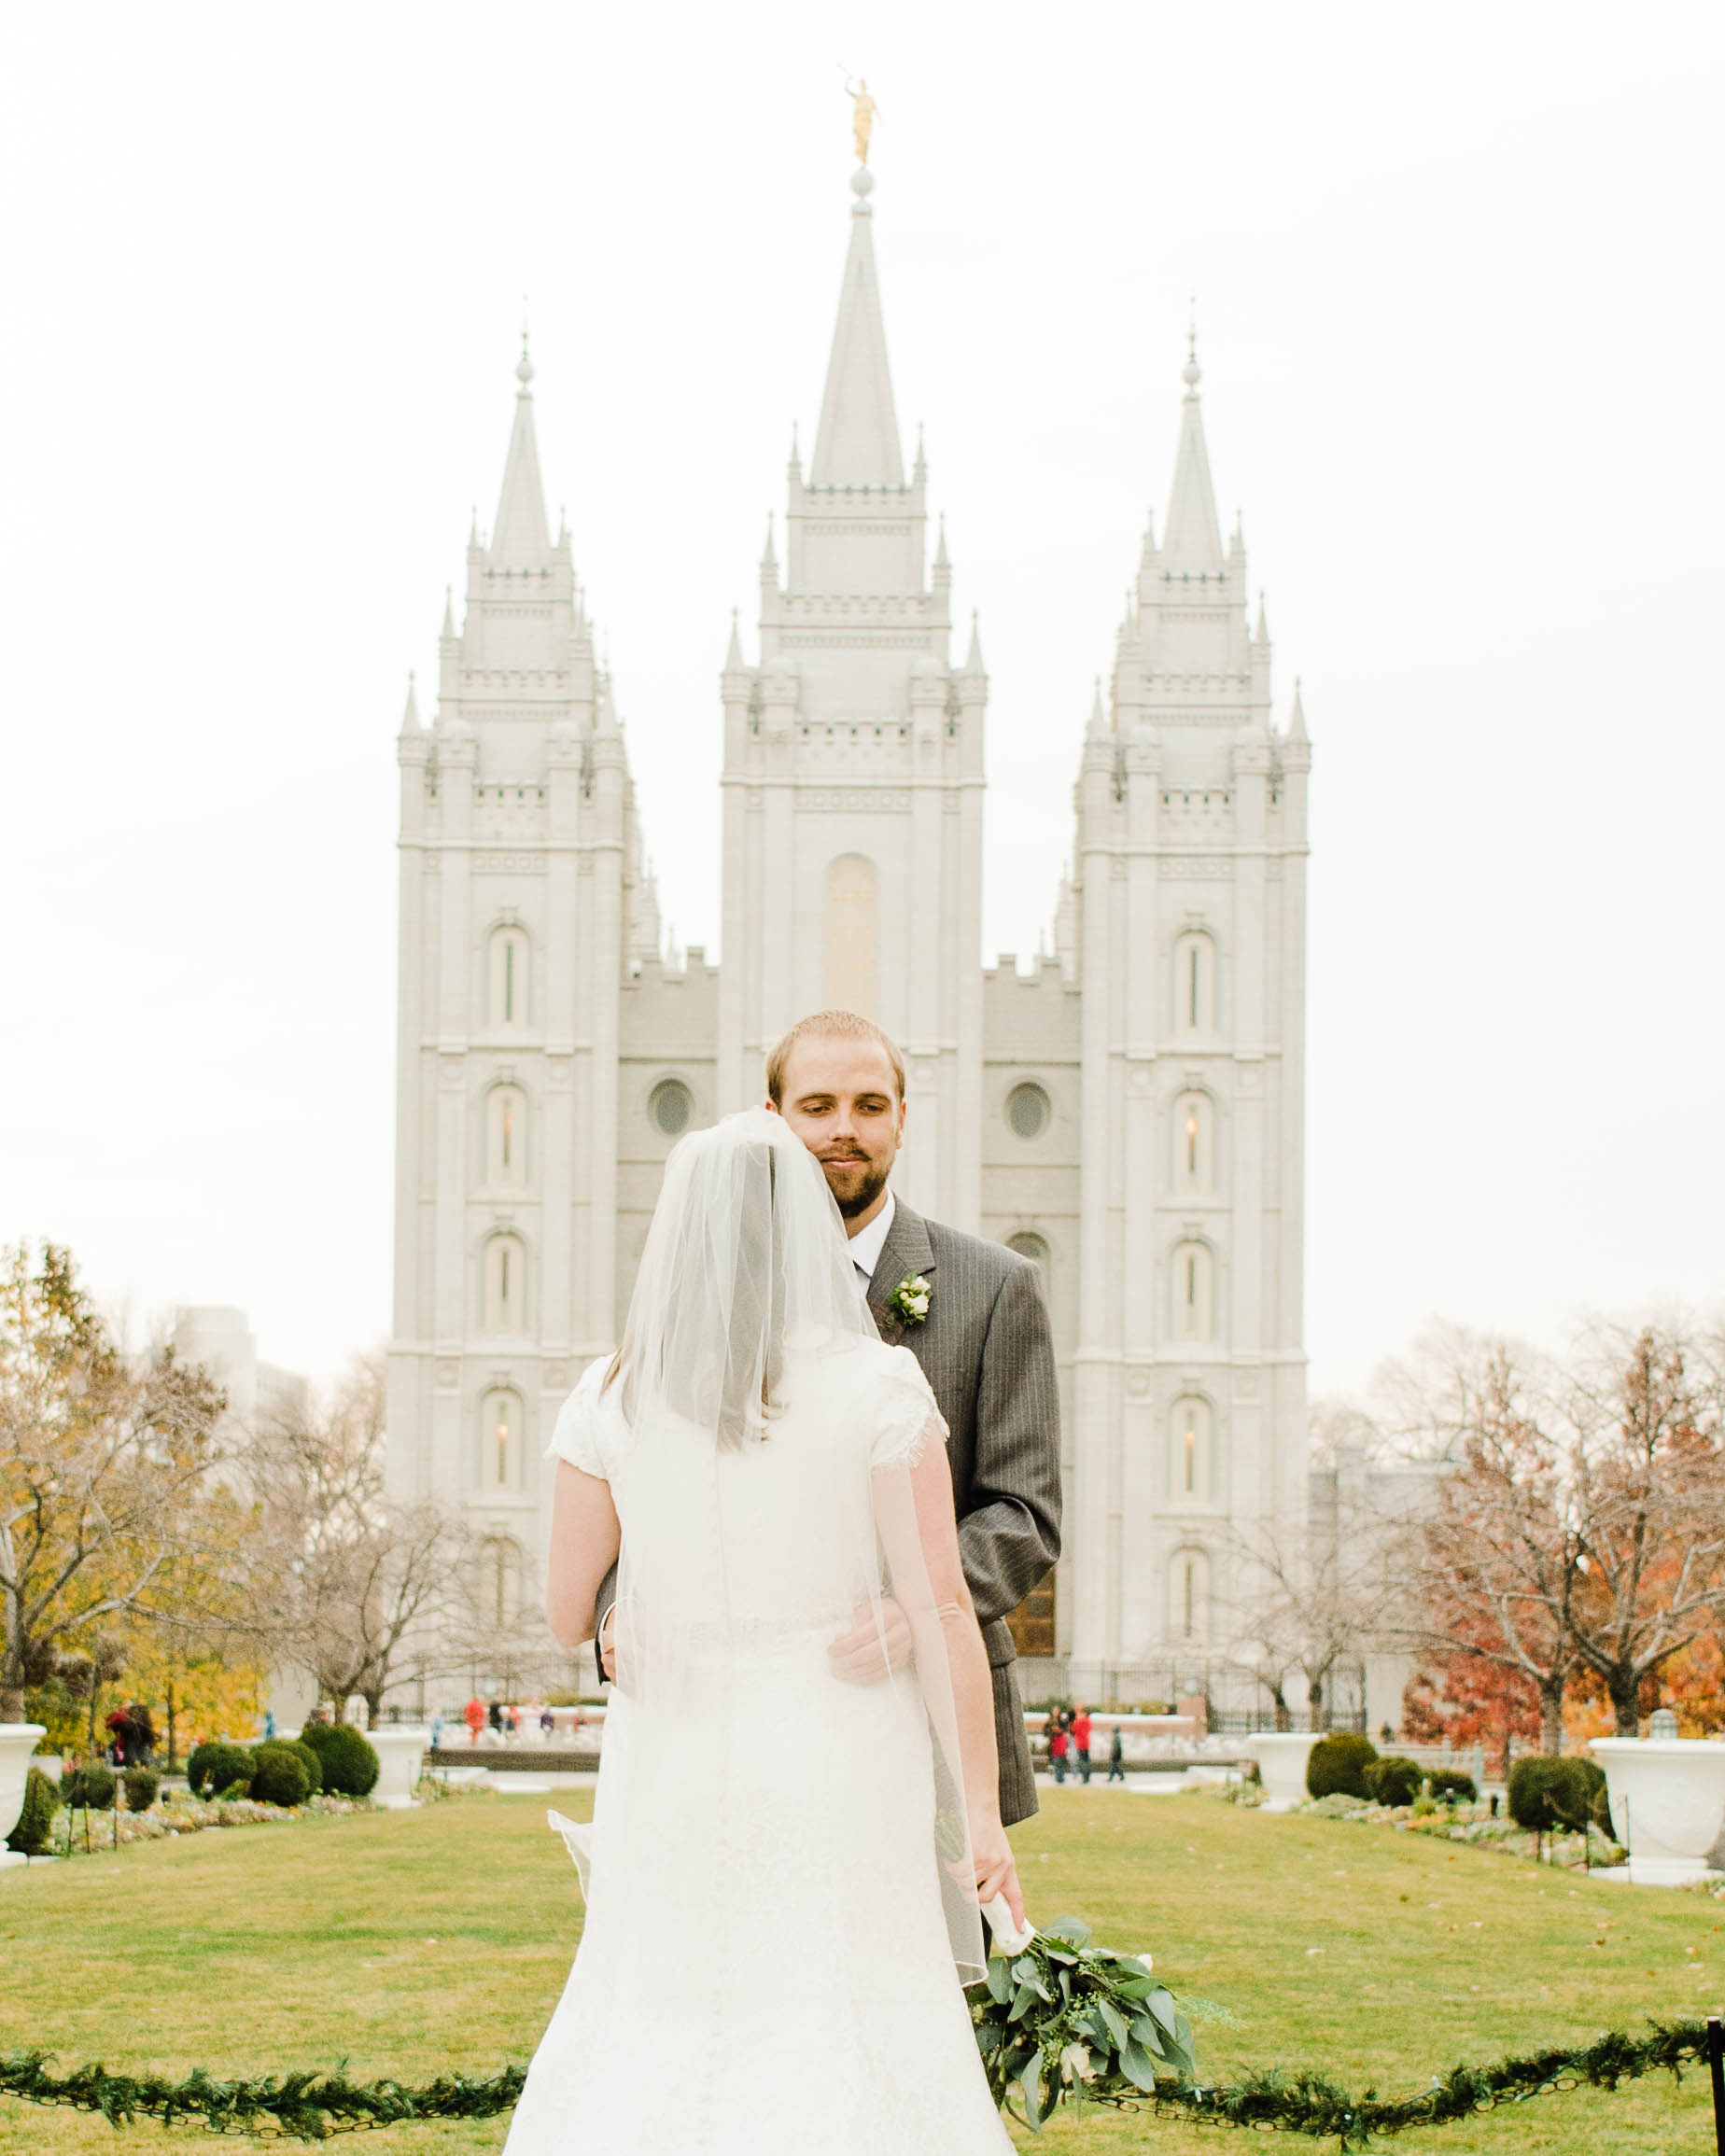 LINDSAY+BRAD-BRIDALS-Sadie_Banks_Photography-155.jpg